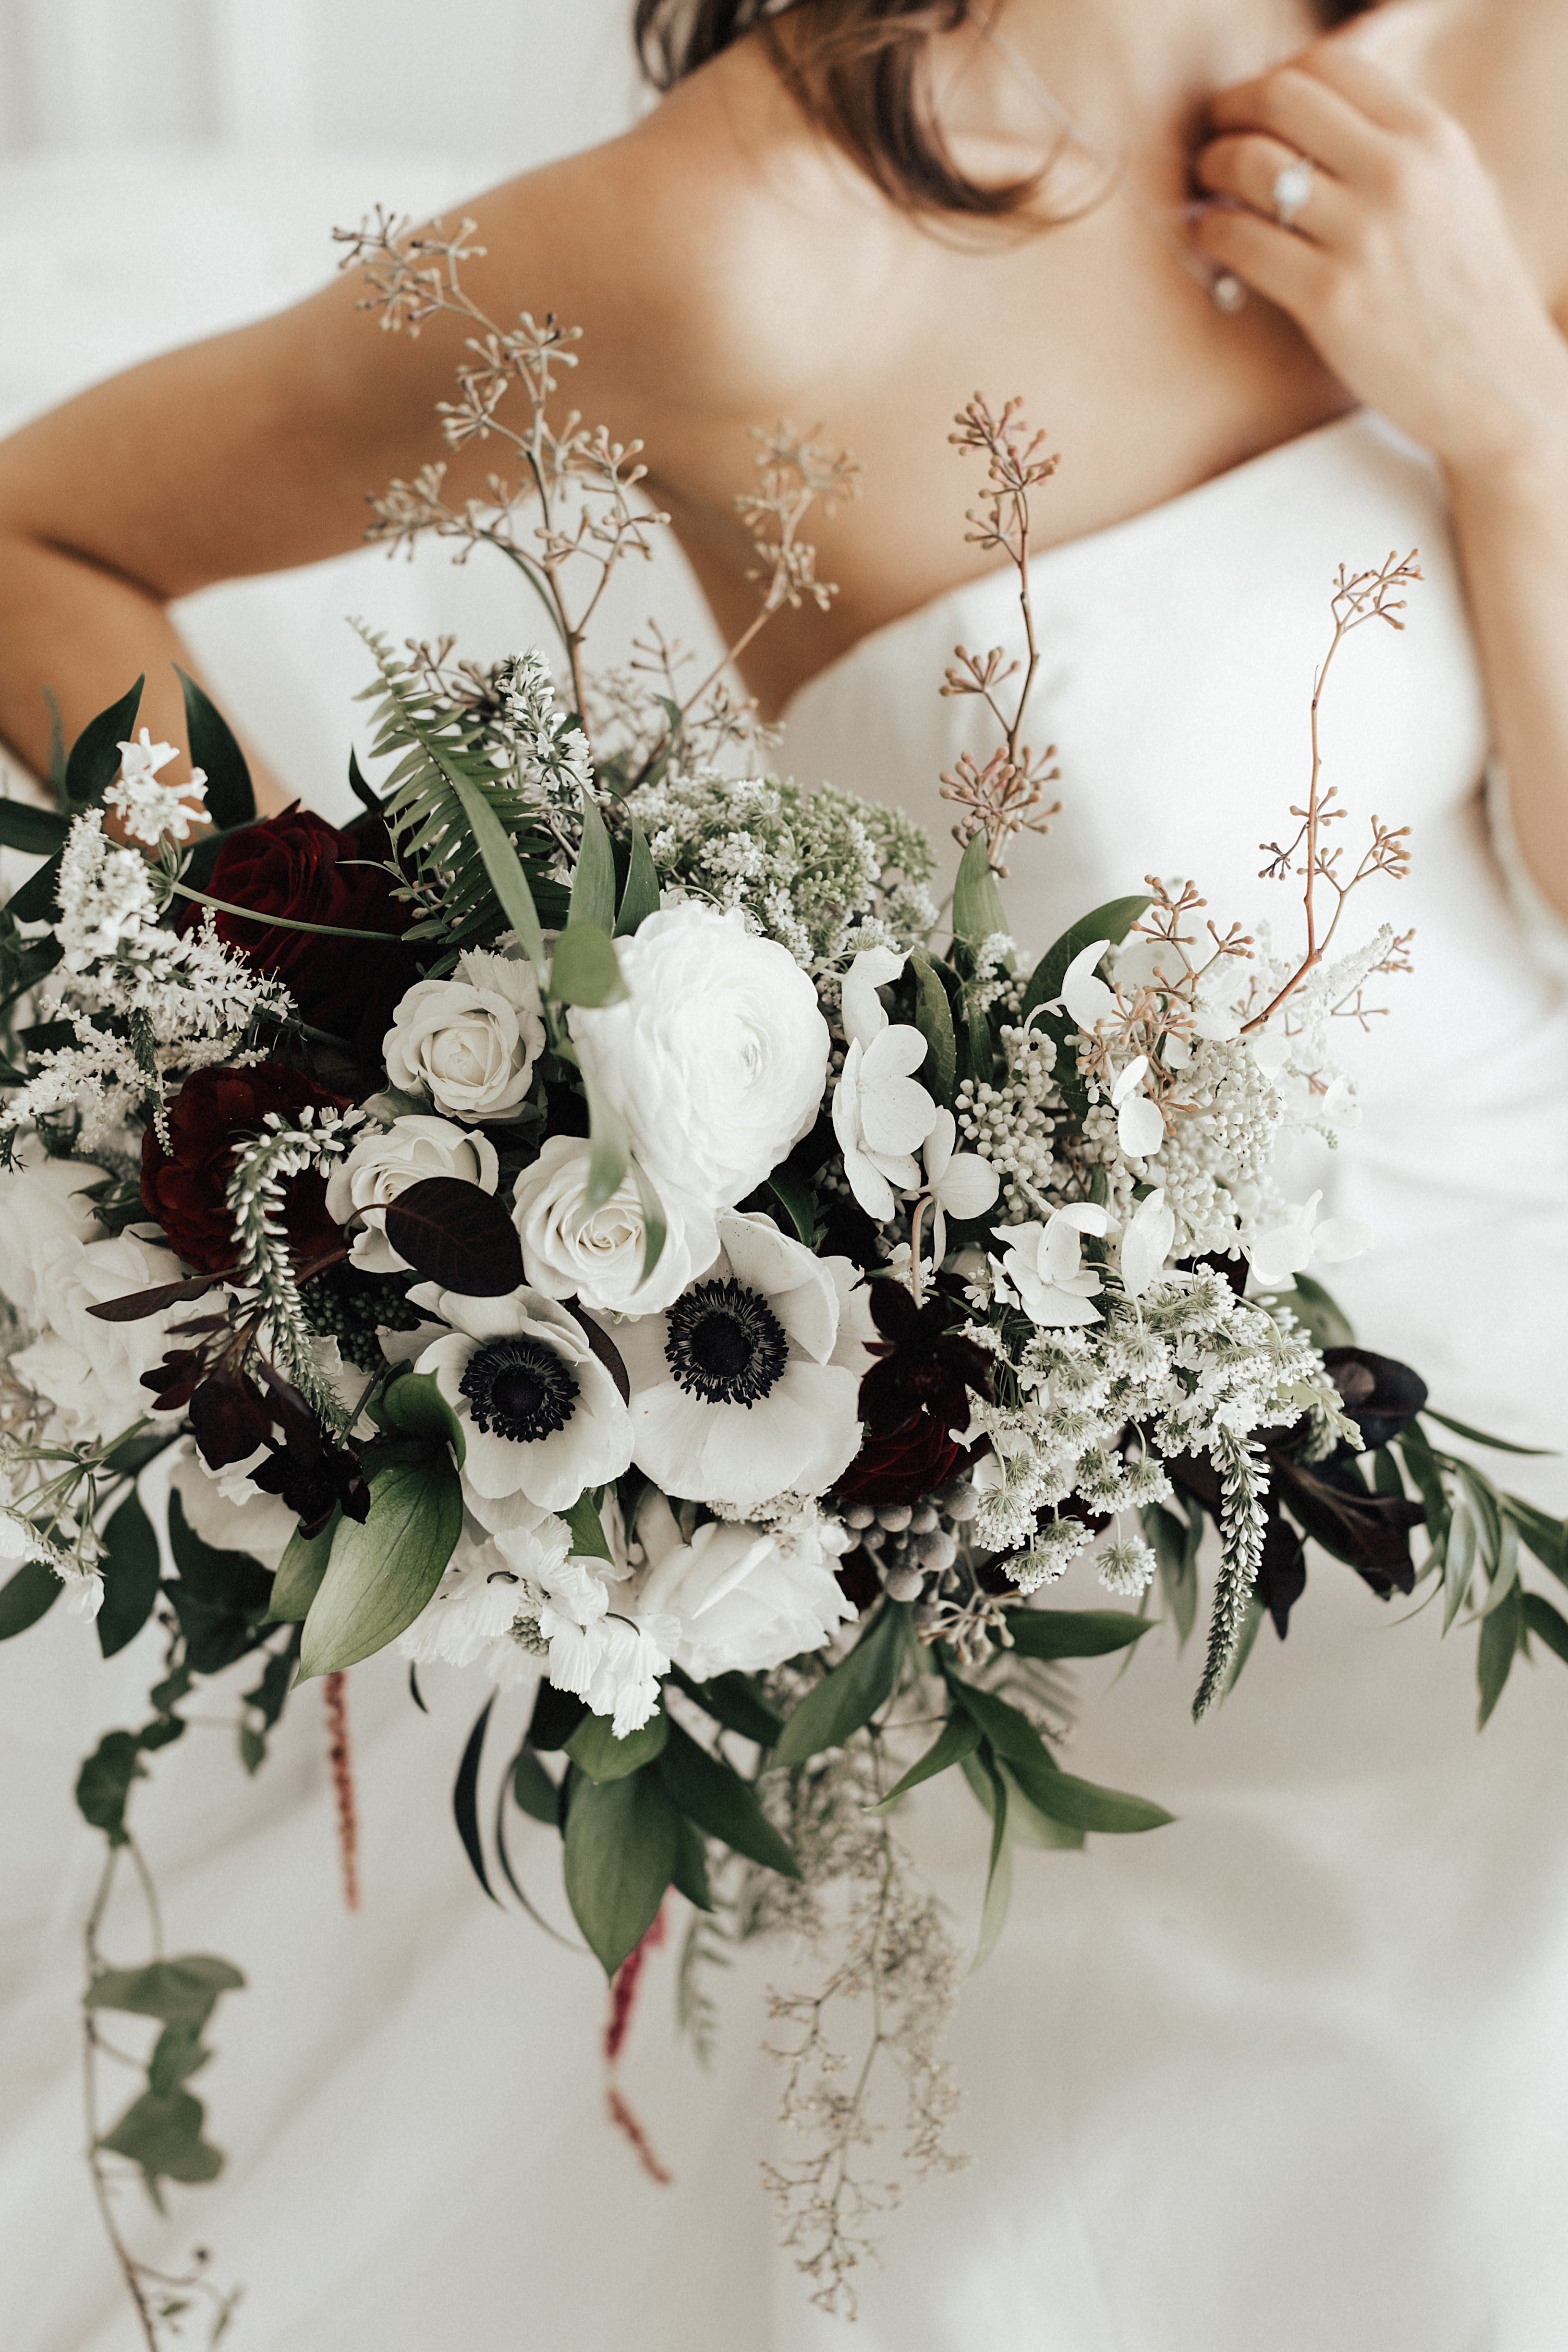 White Anemone Bouquet With Accents Of Dark Greenery And Burgundy